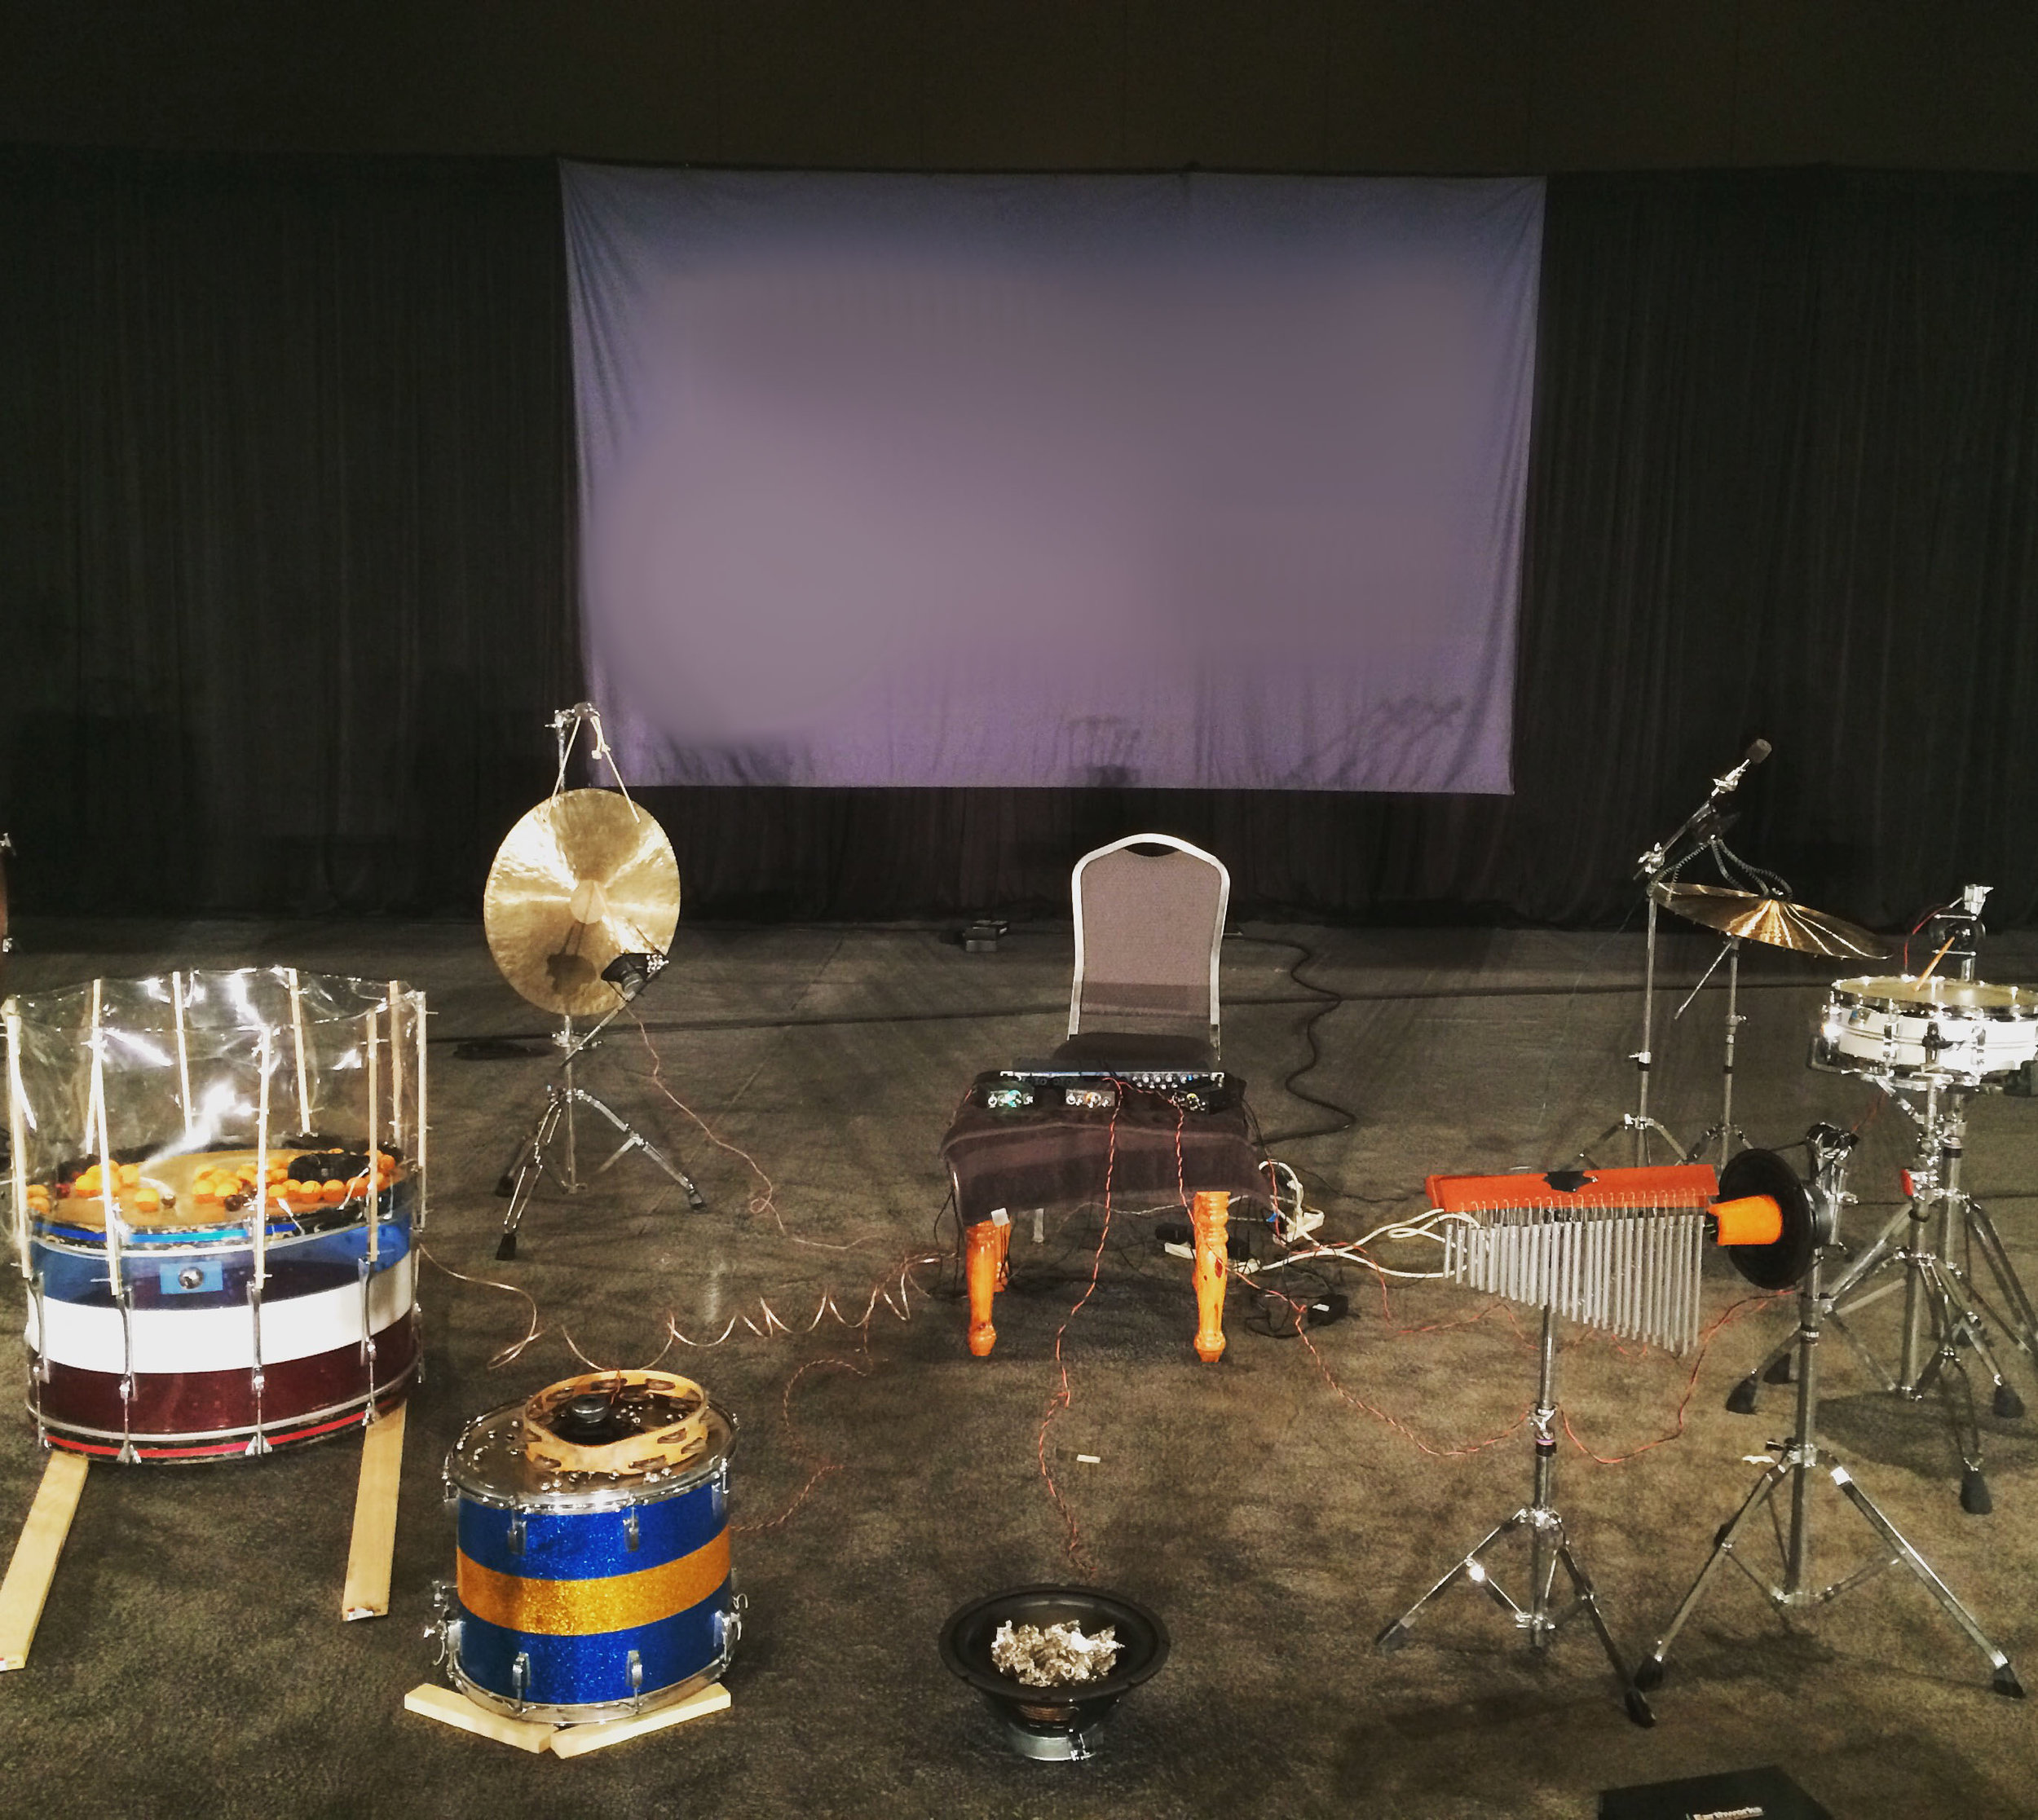 Music for Solo Performer, as presented at PASIC 2015